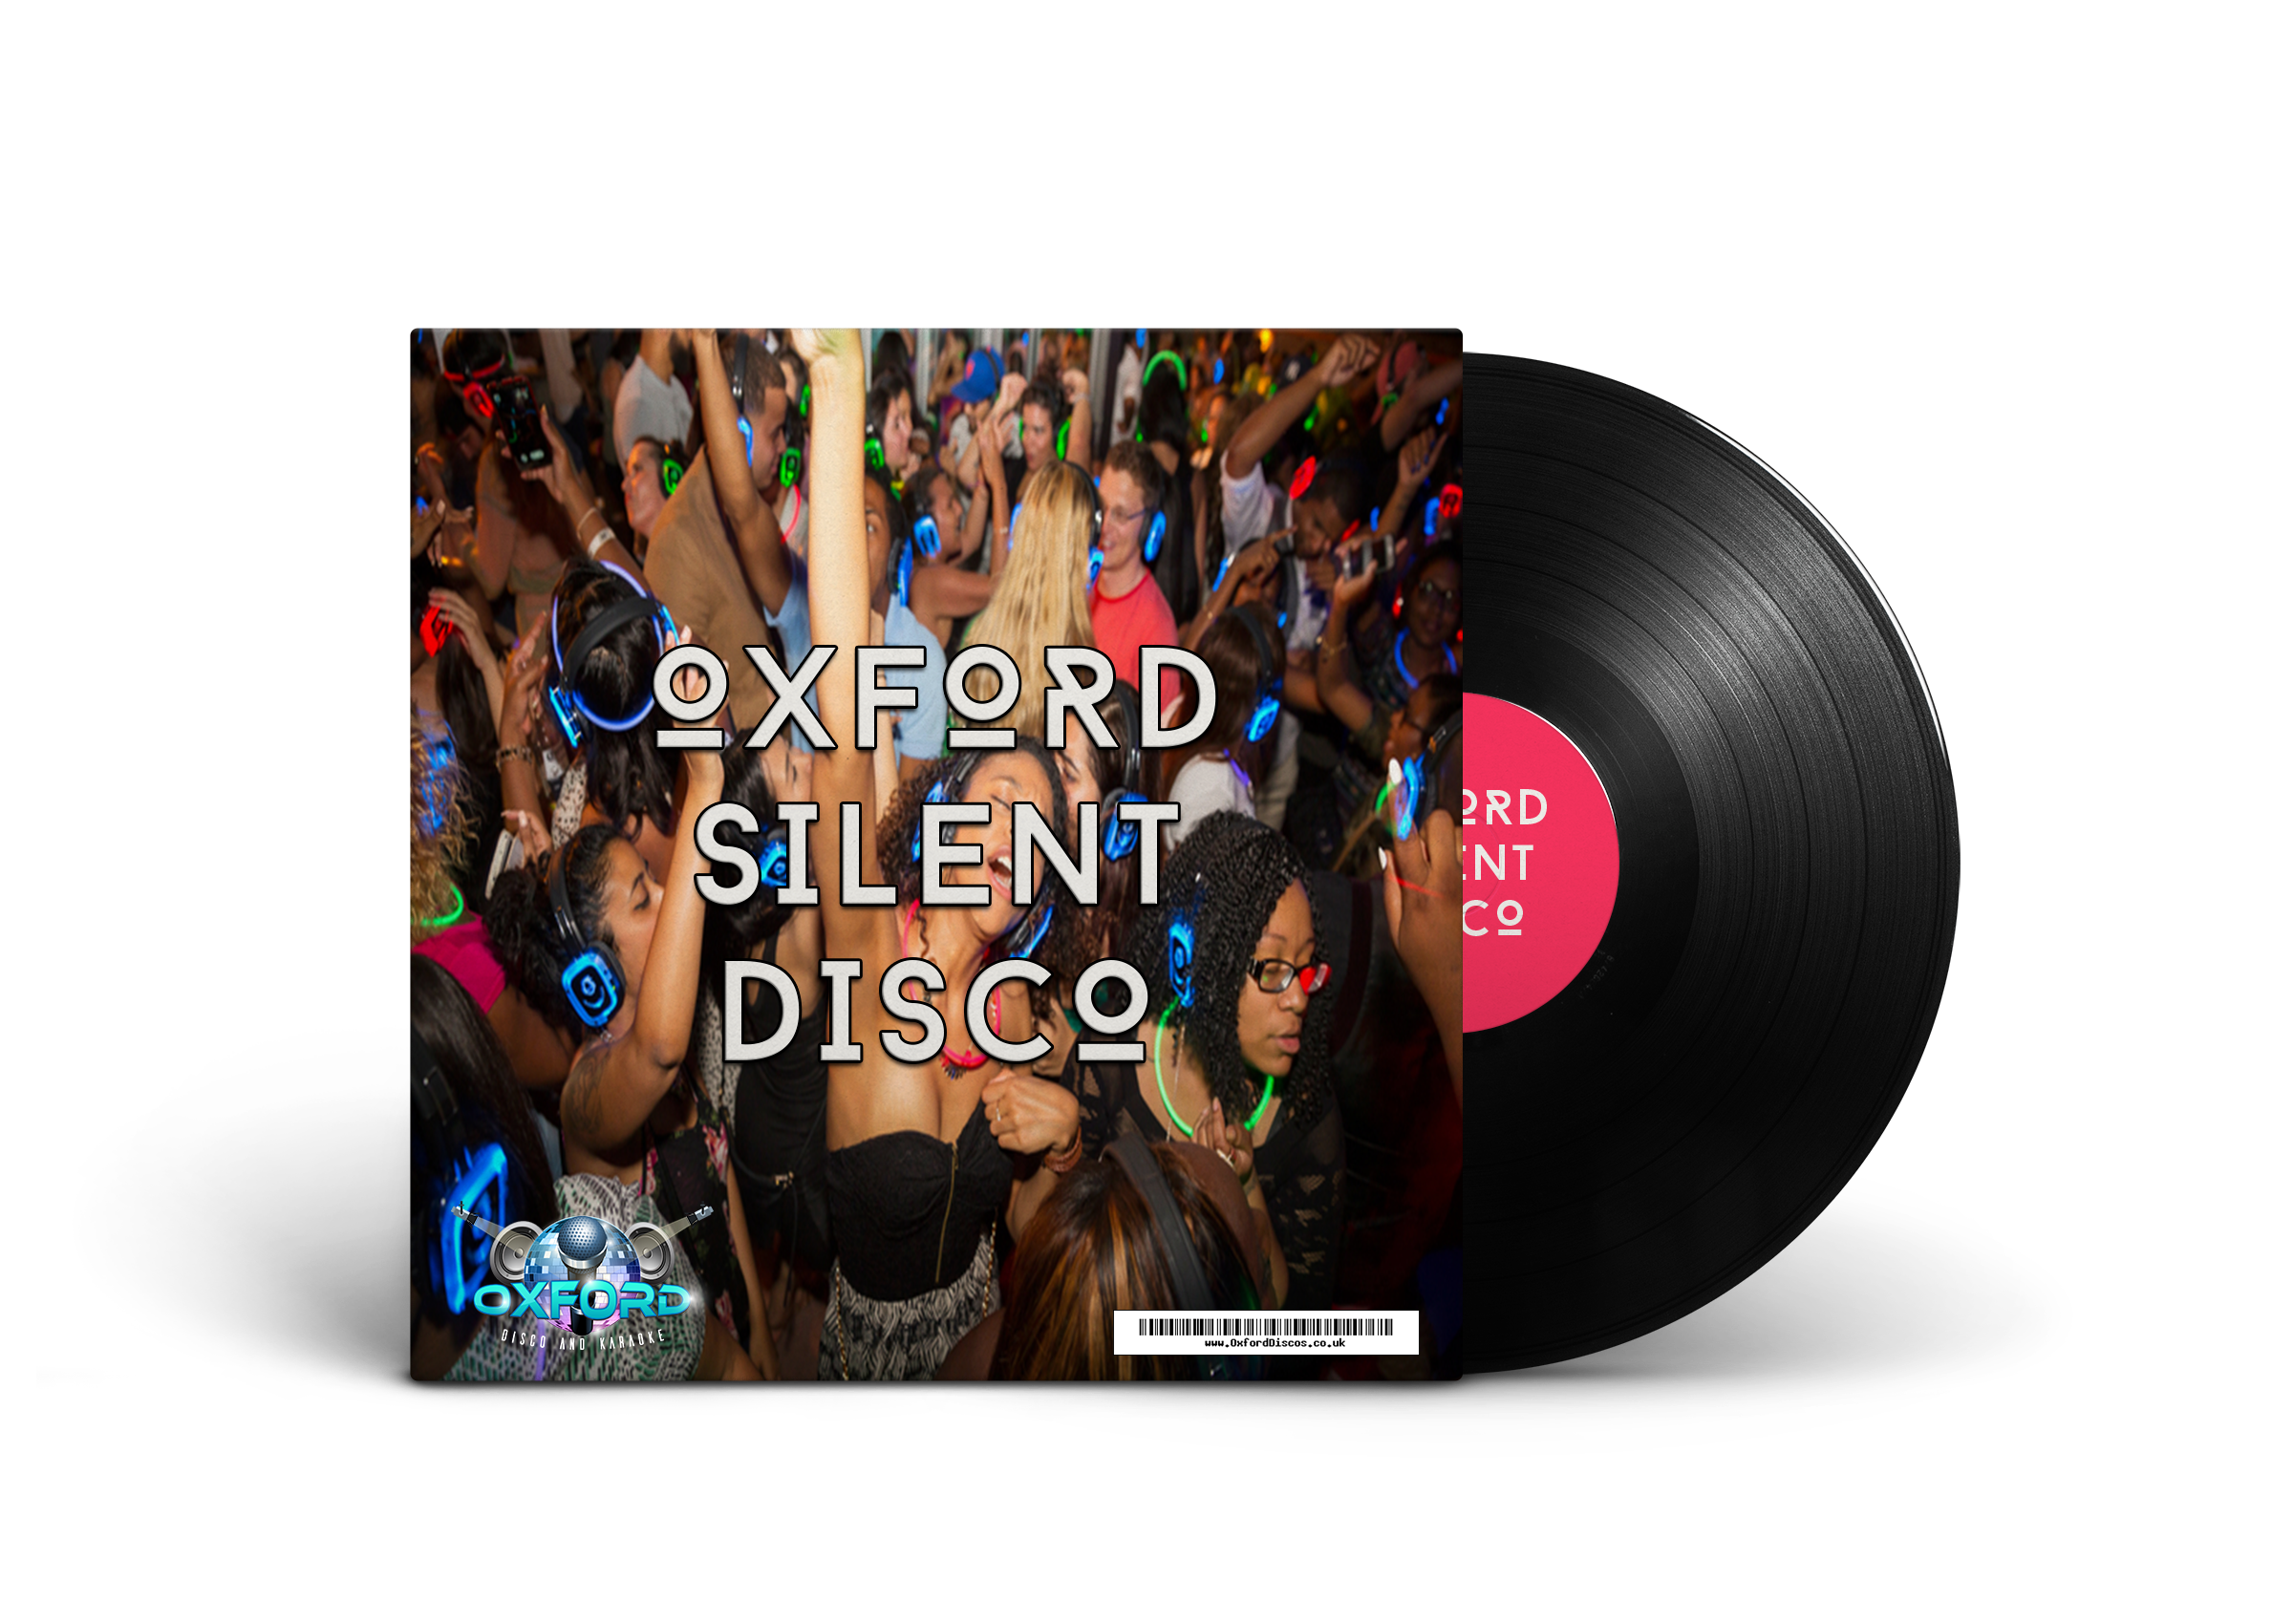 15 Oxford Silent Disco